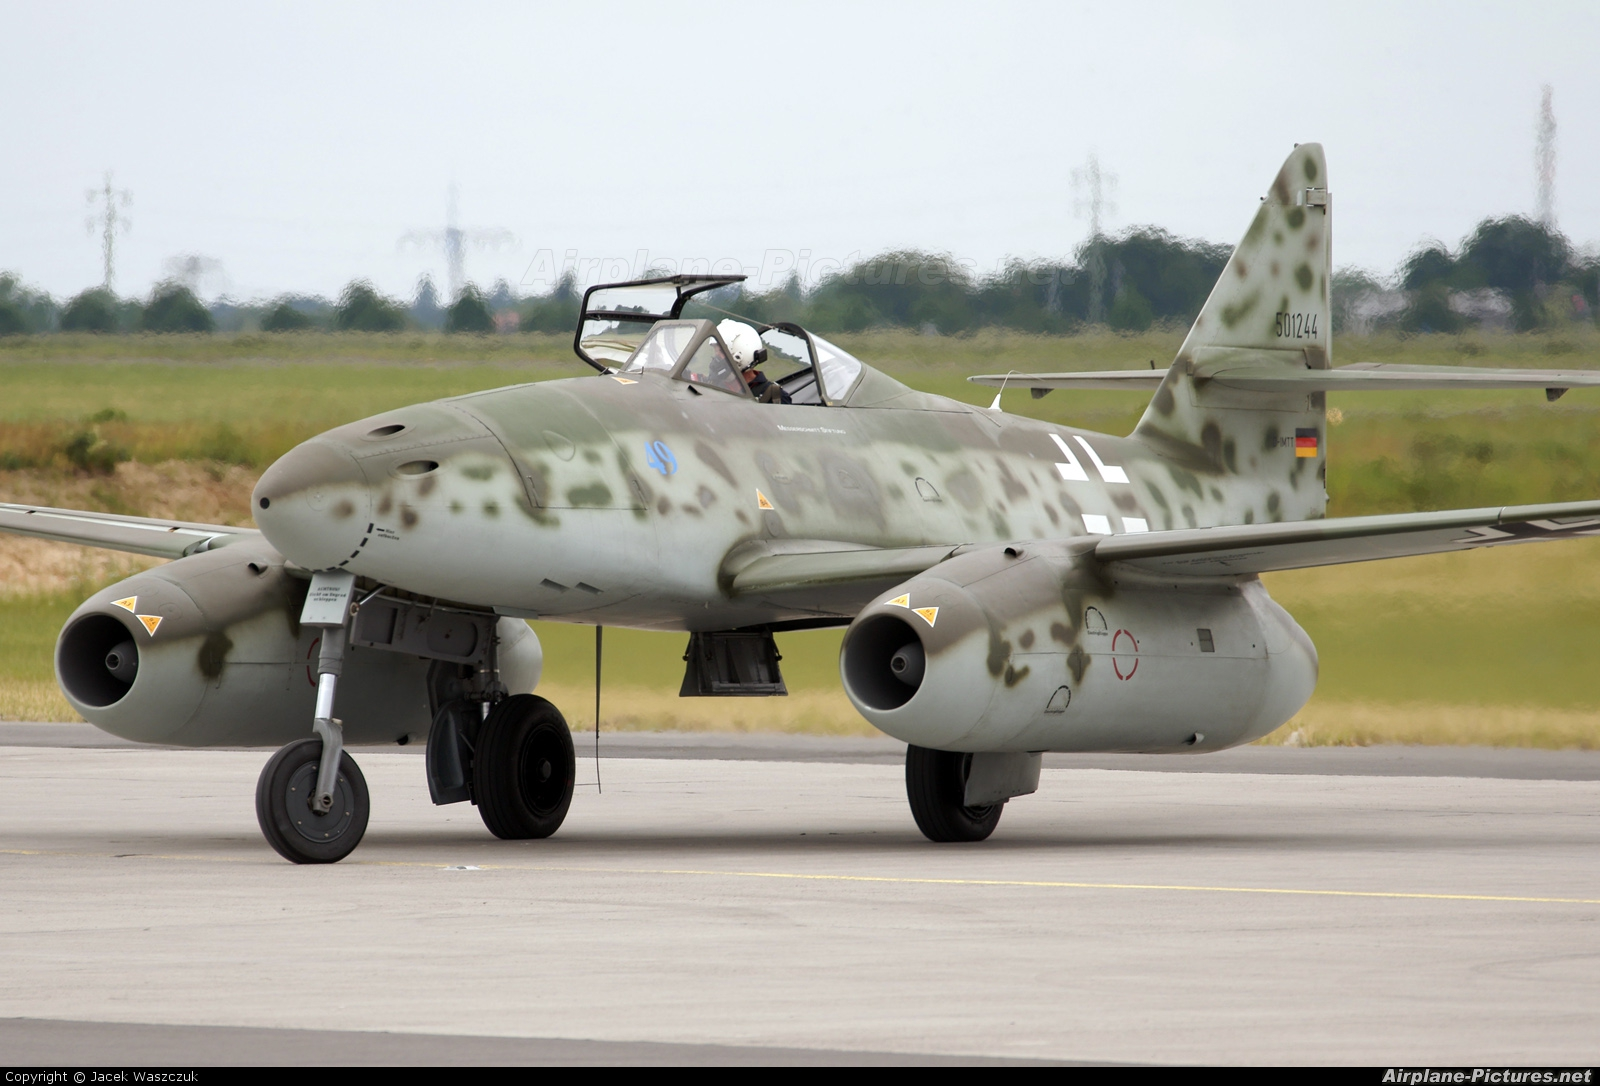 Messerschnmitt ME 262 landing gear thought to explain the Messerschnmitt ME 262